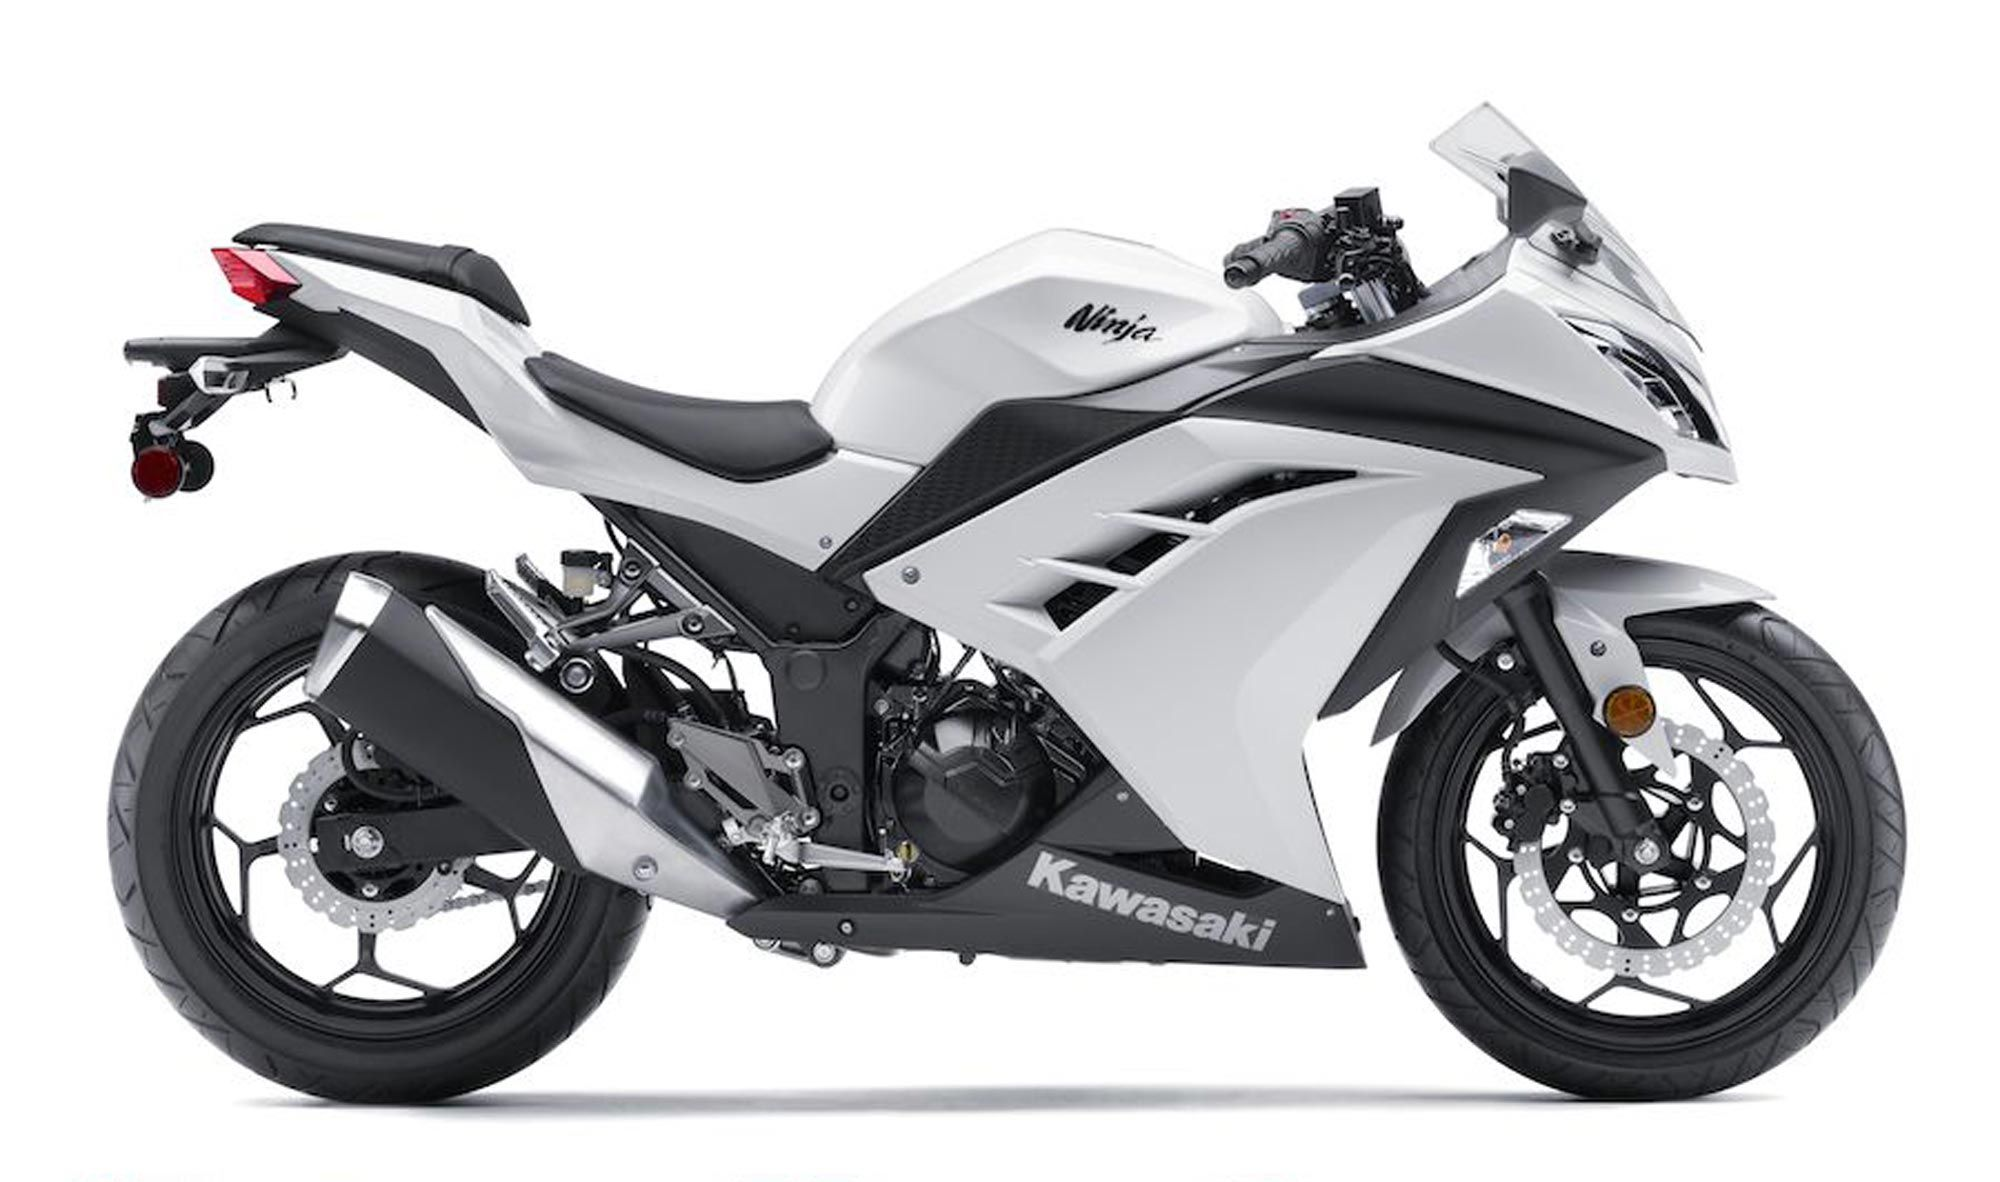 White Kawasaki Ninja 300 abs Motorcycle Google Search